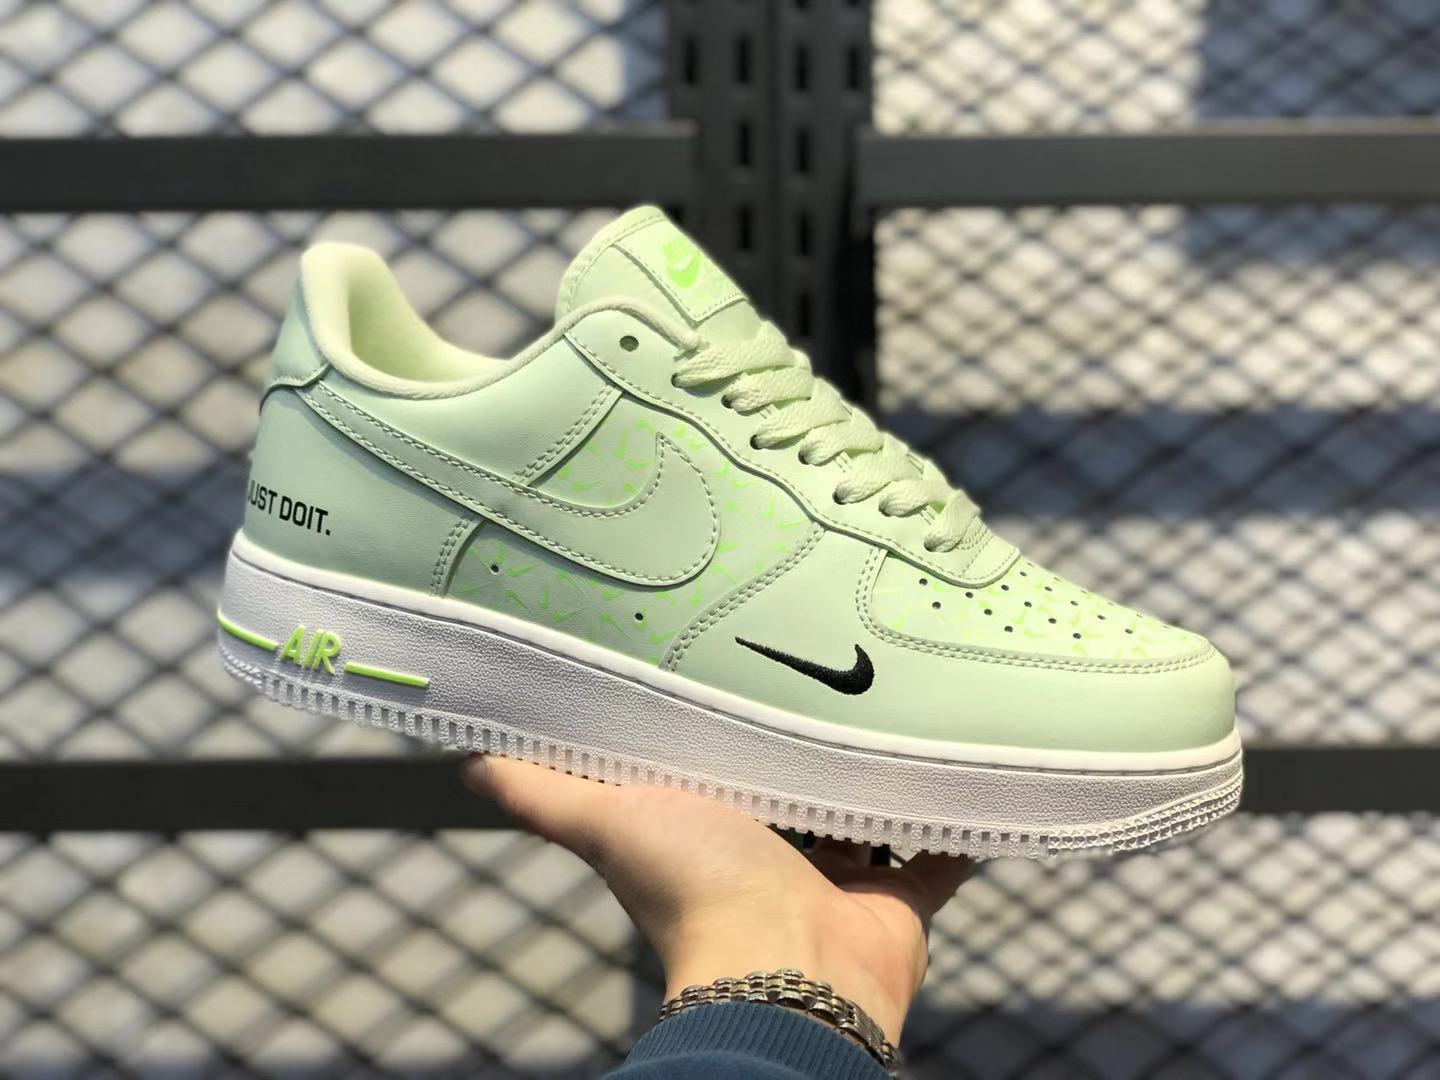 """Nike WMNS Air Force 1 """"Just Do It"""" Neon Yellow/White Casual Sneakers CT2541-700"""